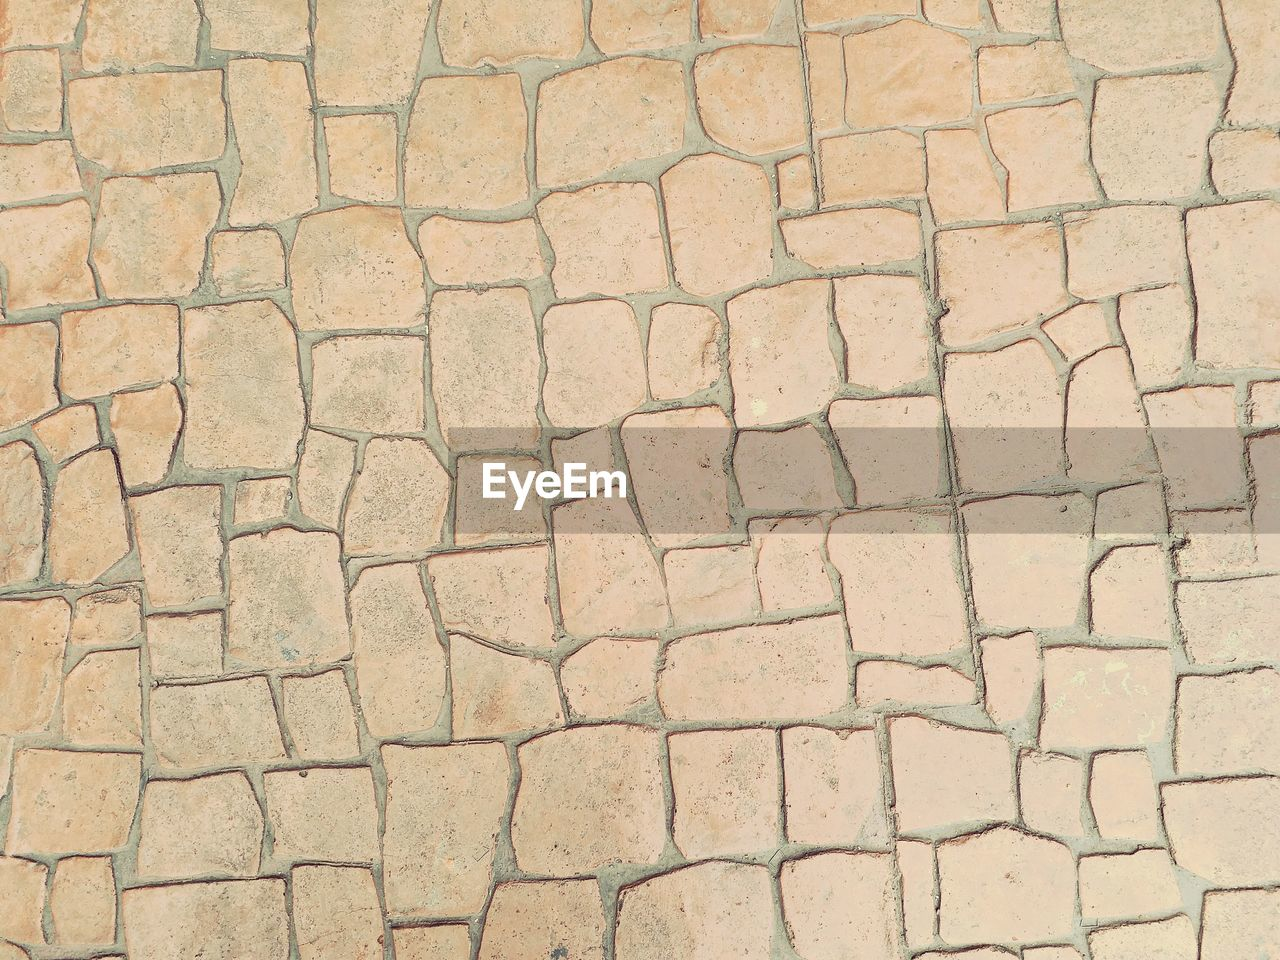 full frame, backgrounds, pattern, no people, day, repetition, textured, high angle view, built structure, outdoors, street, flooring, directly above, footpath, nature, architecture, paving stone, tile, close-up, stone material, arid climate